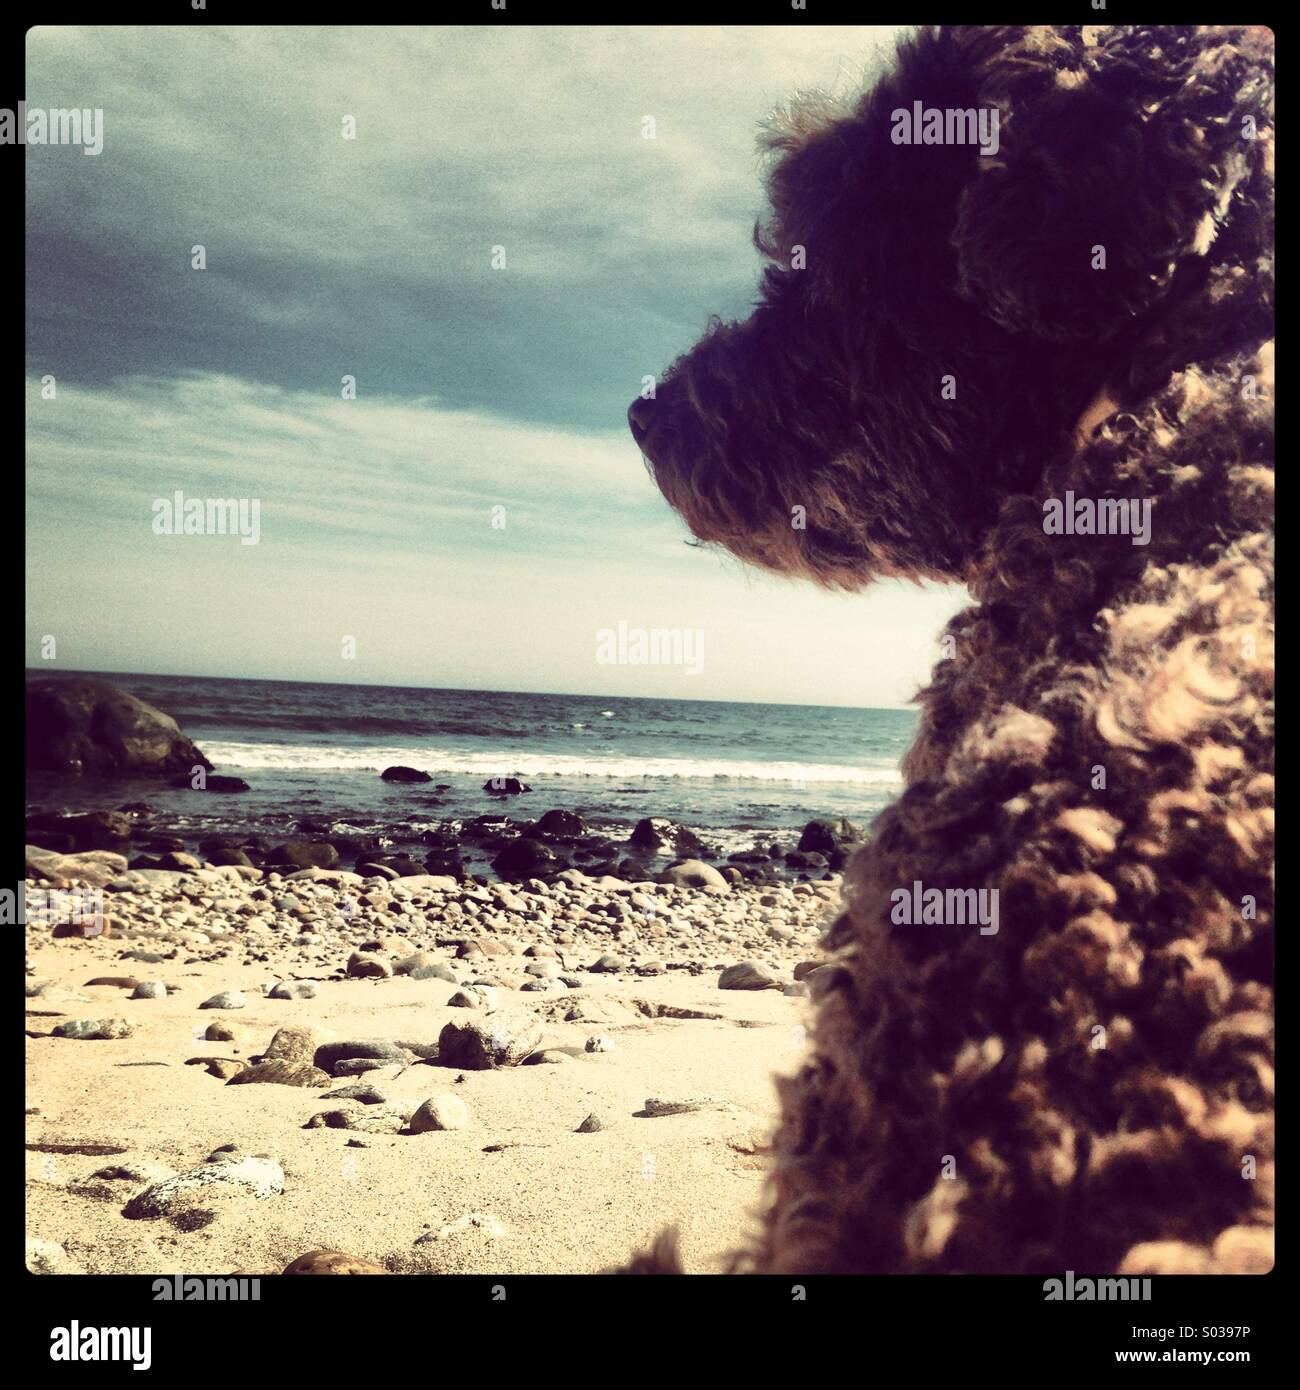 Poodle on beach - Stock Image